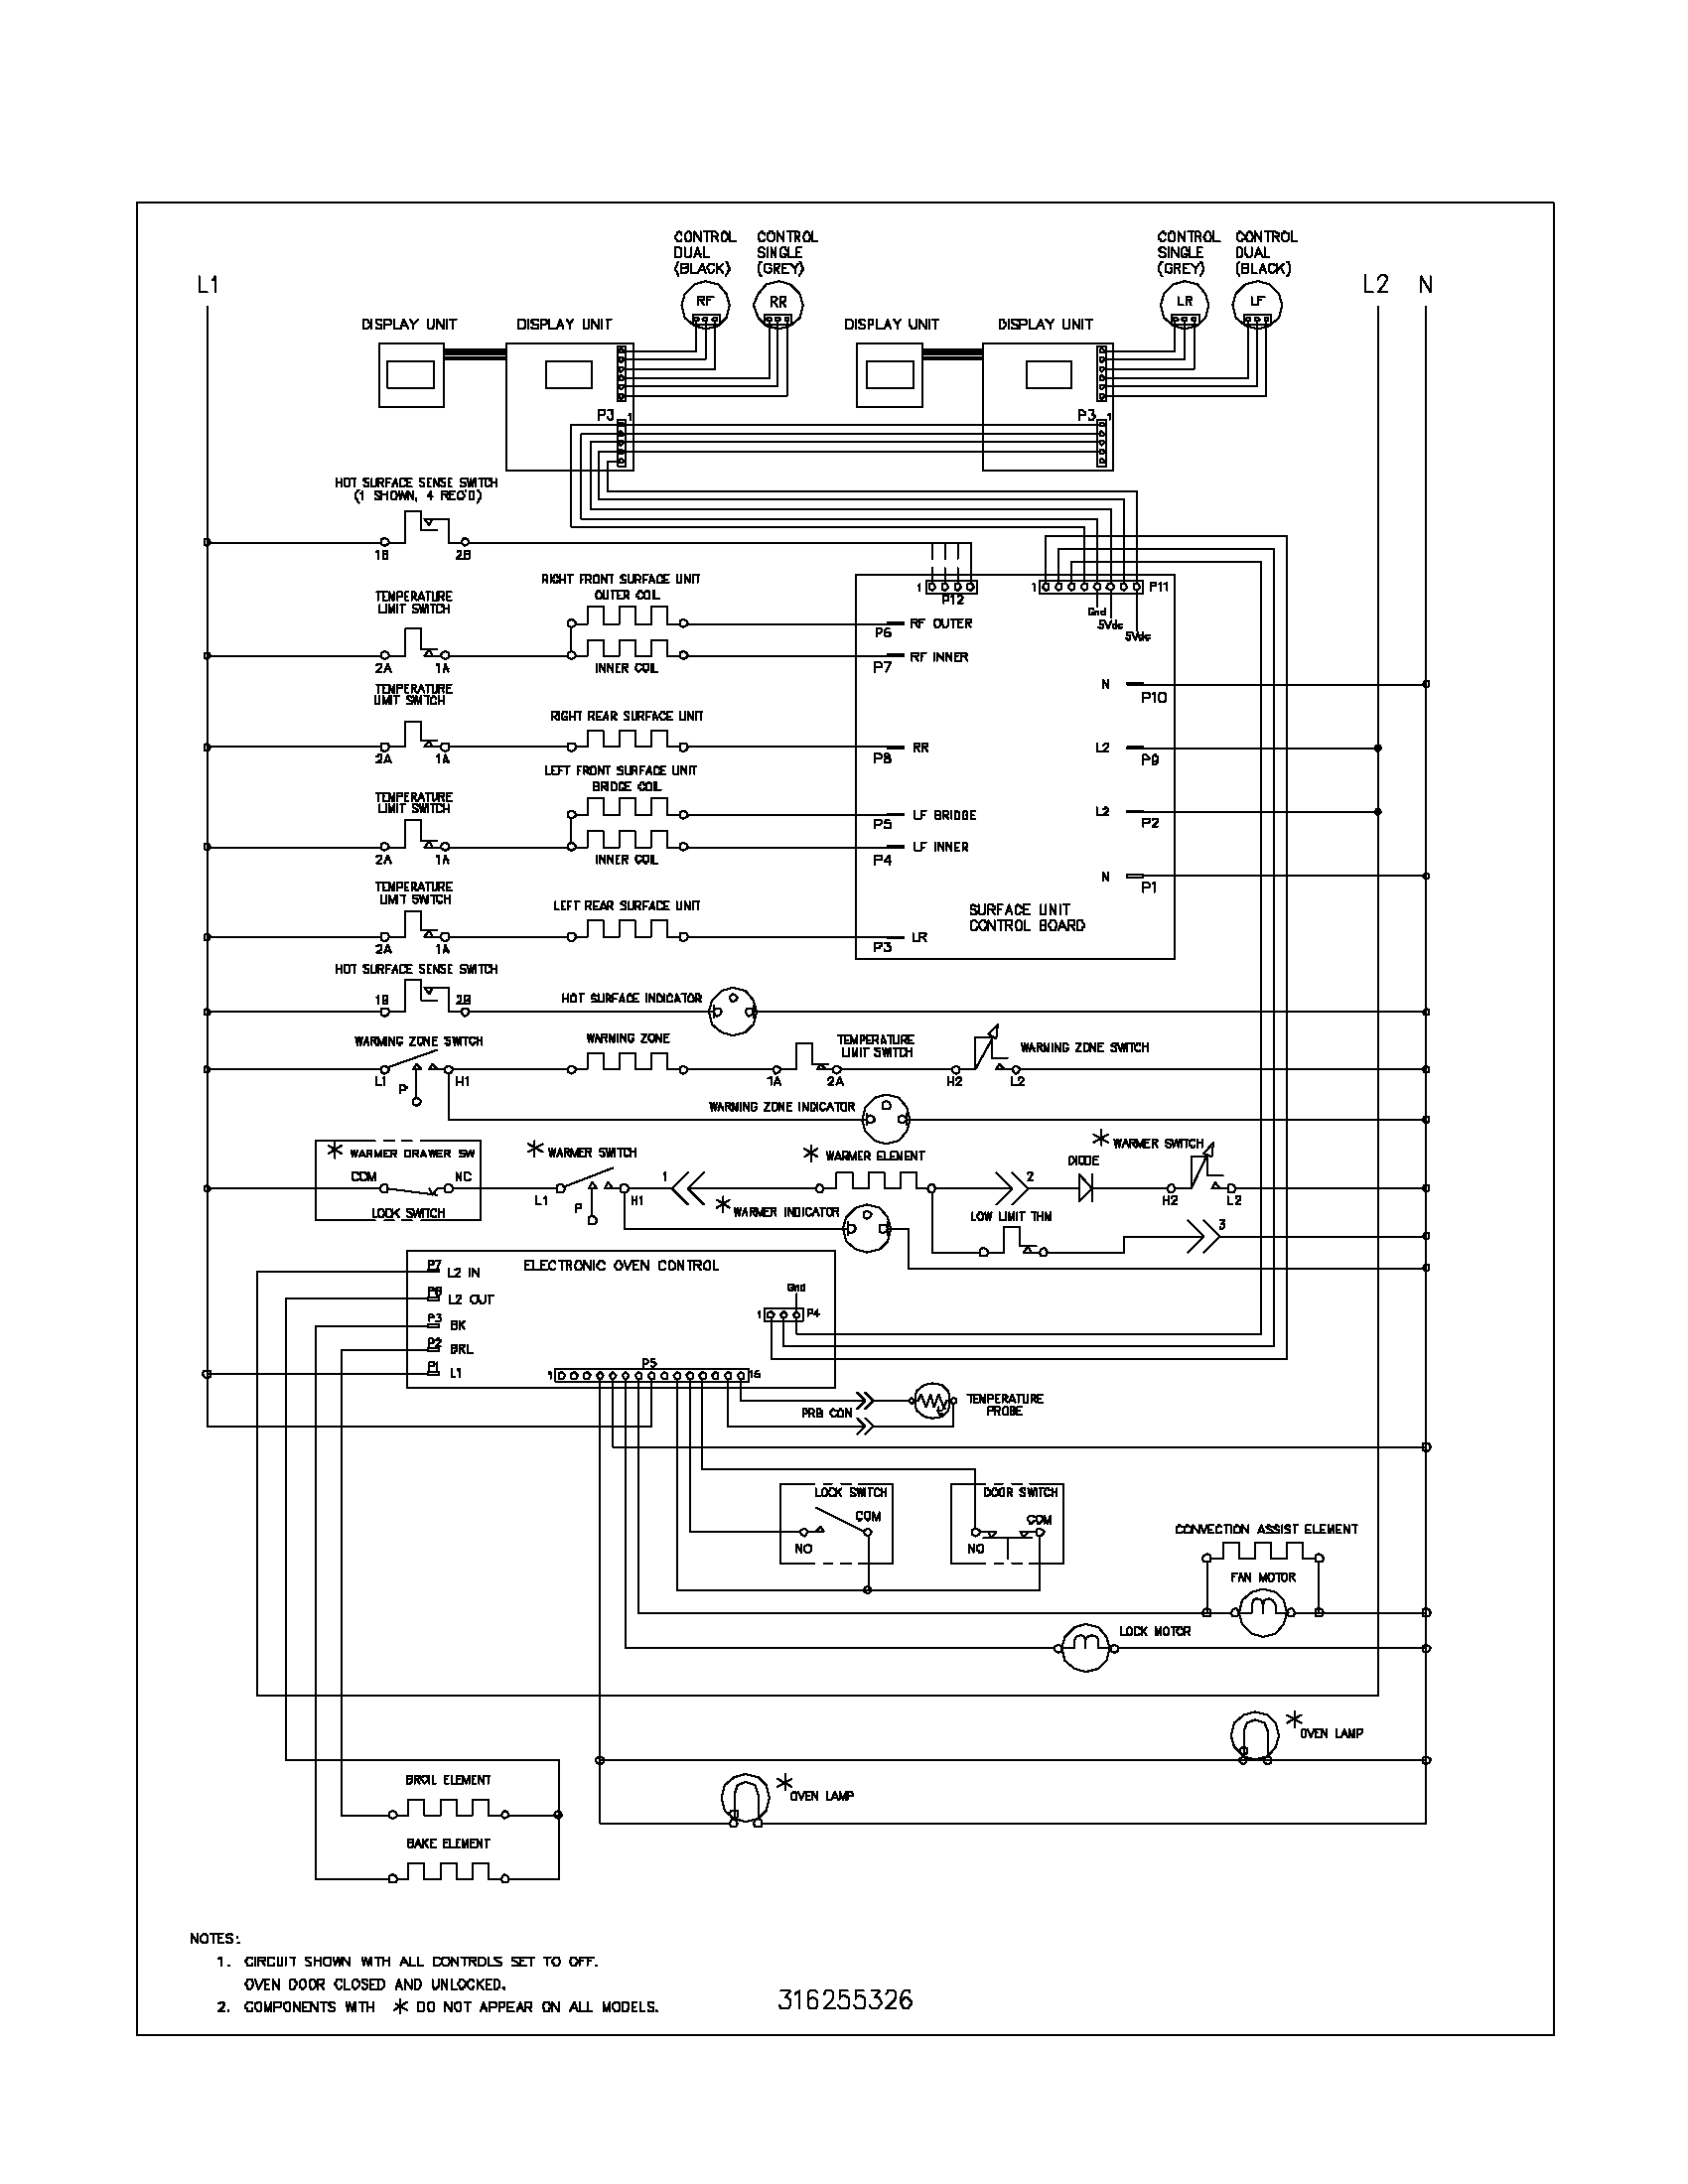 light switch single pole wiring schematic with 3 Way Switch  Bo Wiring Diagram on Double Pole Gfci Breaker Wiring Diagram in addition Wiring Diagram Lighting Contactor With Photocell in addition Watt Stopper Cs 50 Wiring Diagram in addition Nutone Exhaust Fan Light Wiring Diagram furthermore Wire E Load.